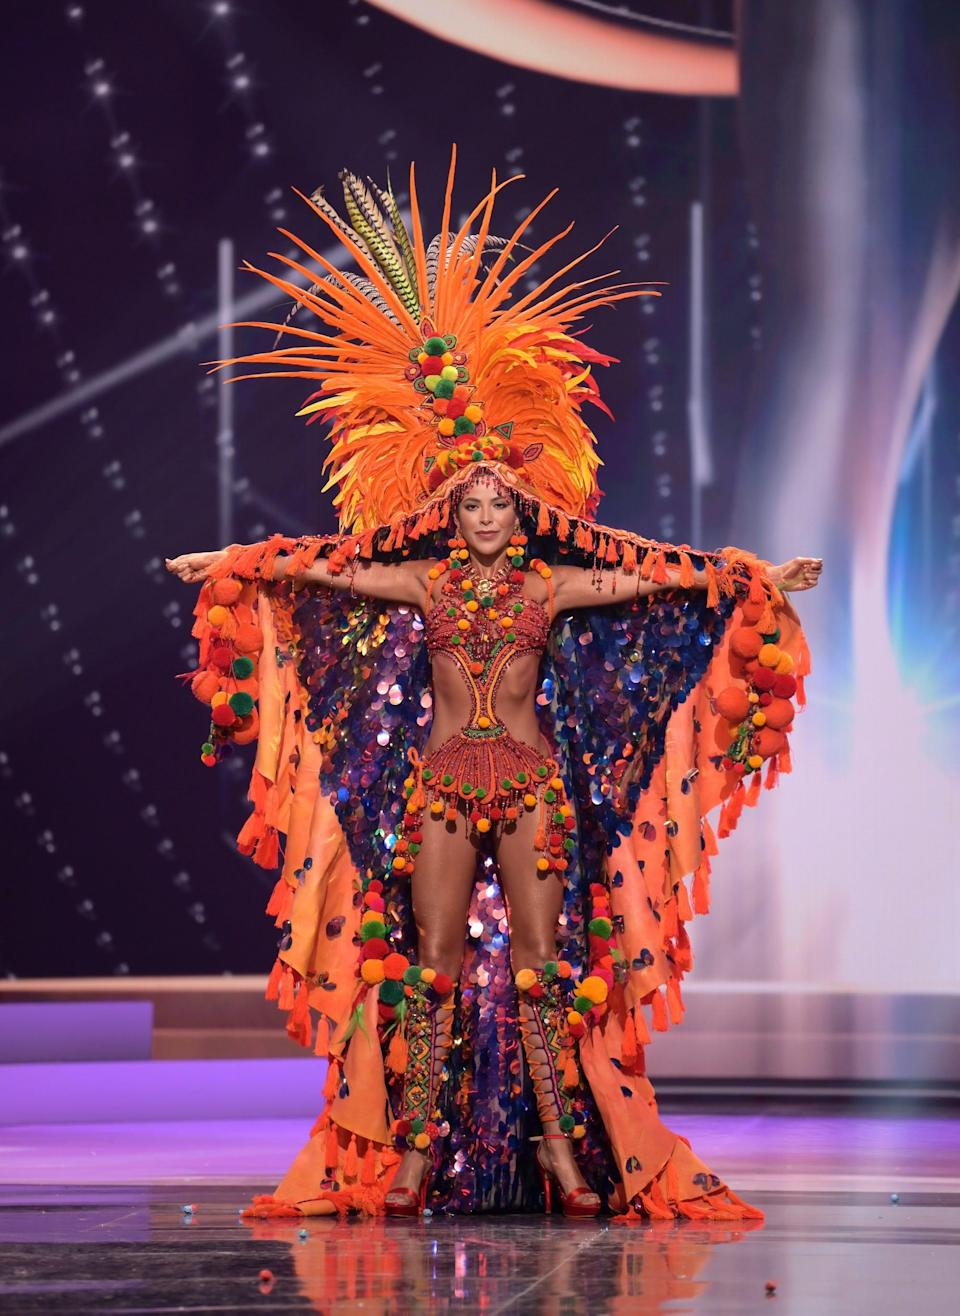 Miss Colombia National Costume Show 2021